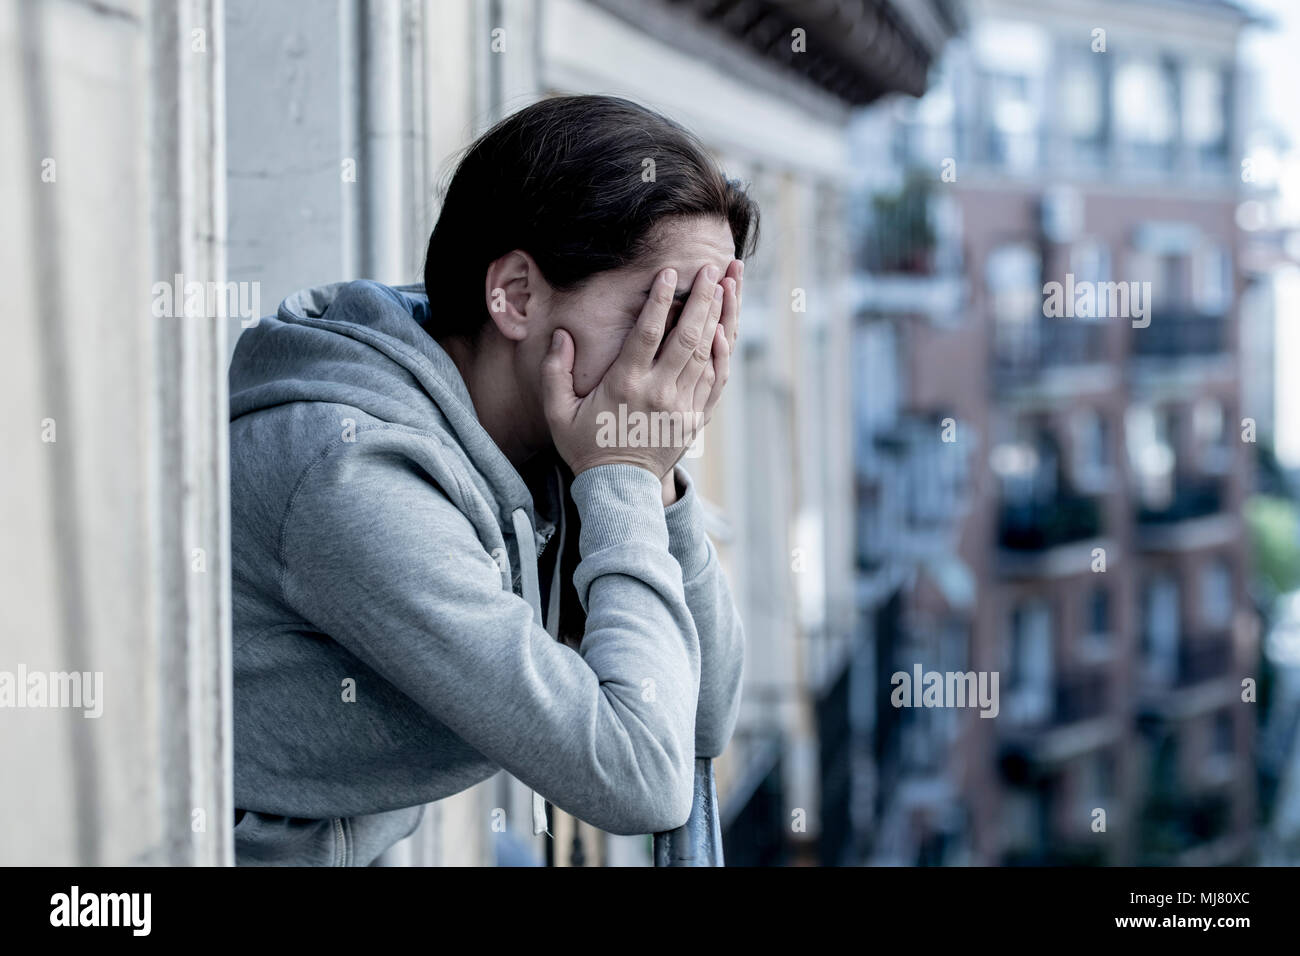 young Latin. sad and depressed woman standing on a balcony feeling over overwhelmed and suffering depression in mental health concept - Stock Image